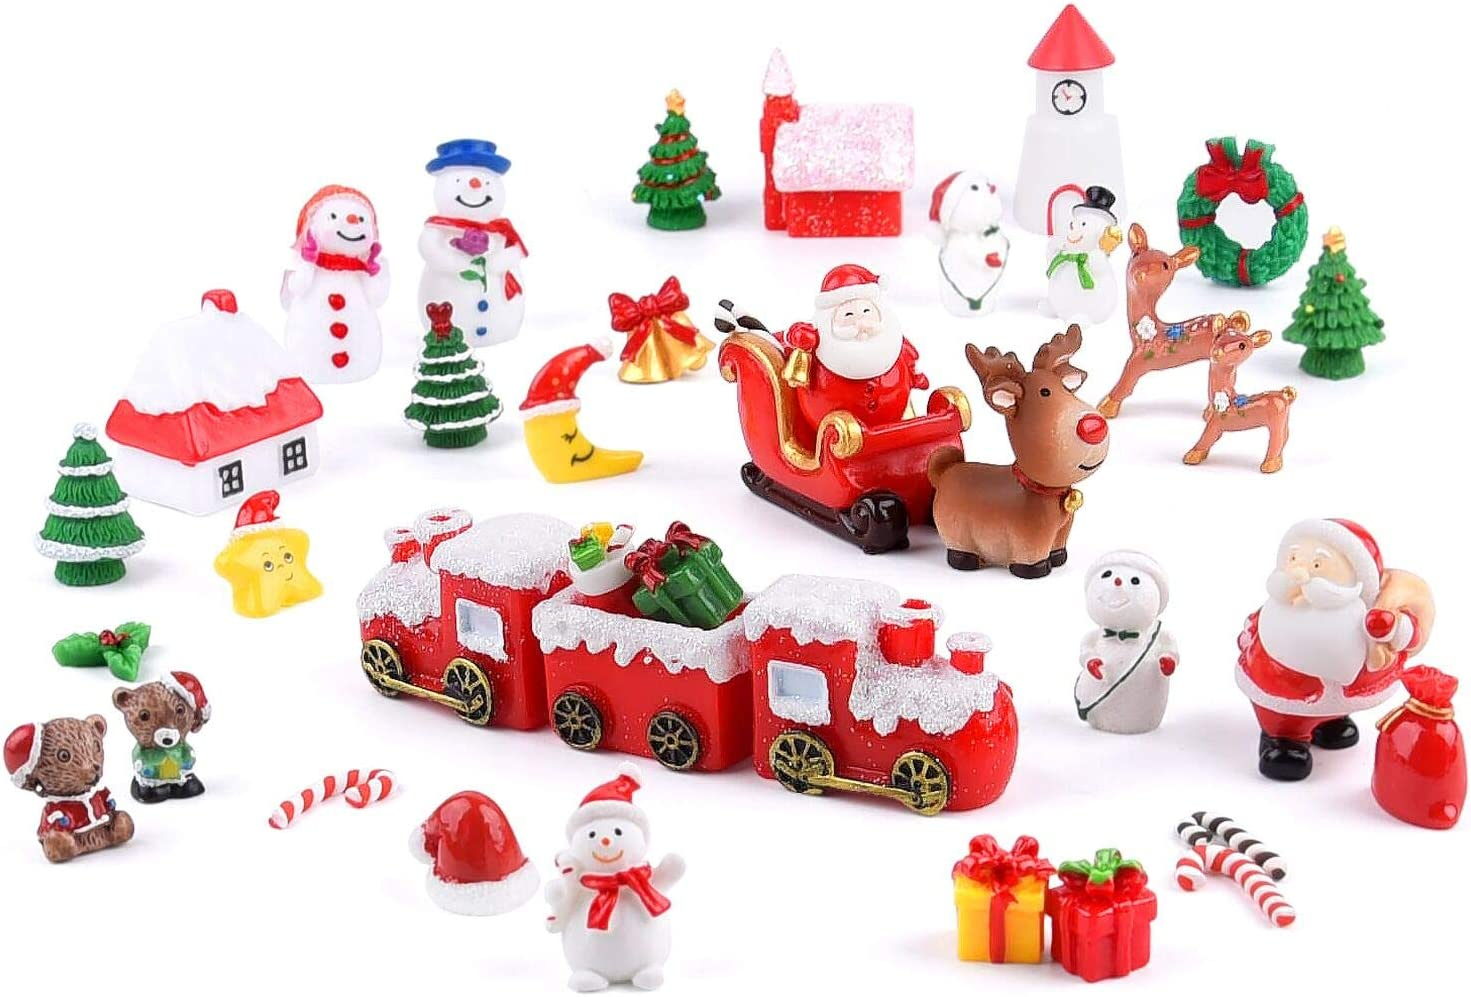 MIAHART 40Pcs Christmas Miniature Ornaments Mini Resin Micro Landscape Ornaments, Christmas Trees Santa Claus Snowman Wreath Bells for Christmas Party Supplies, Fairy Garden Christmas Accessories